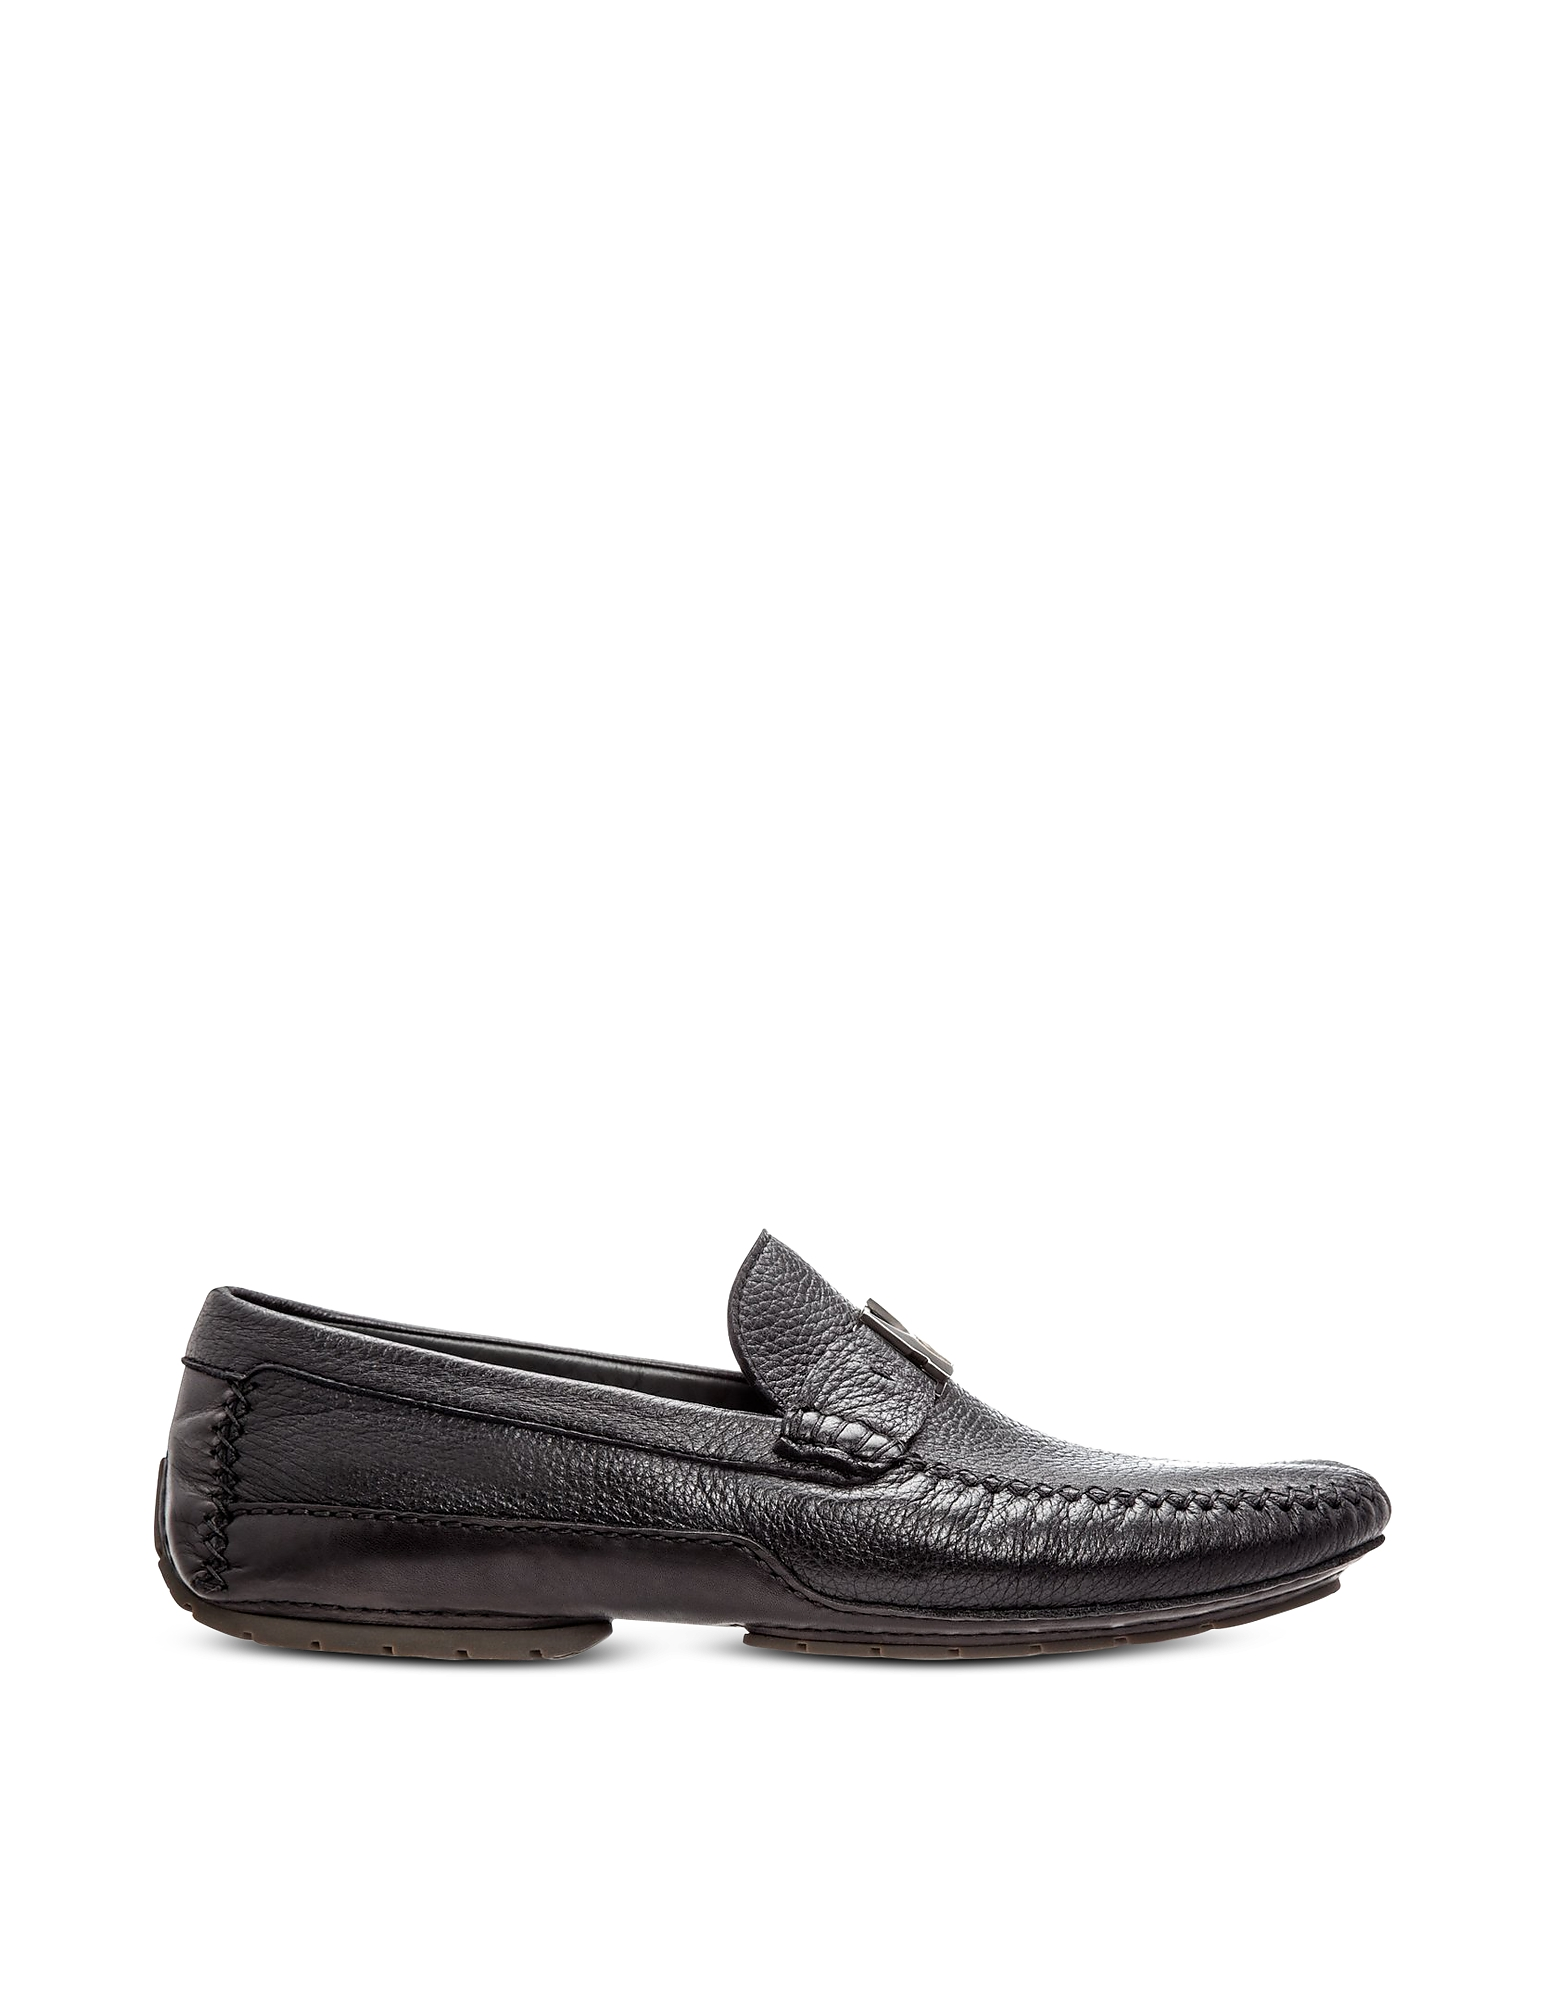 Moreschi Designer Shoes, Black Deerskin Driver Shoes